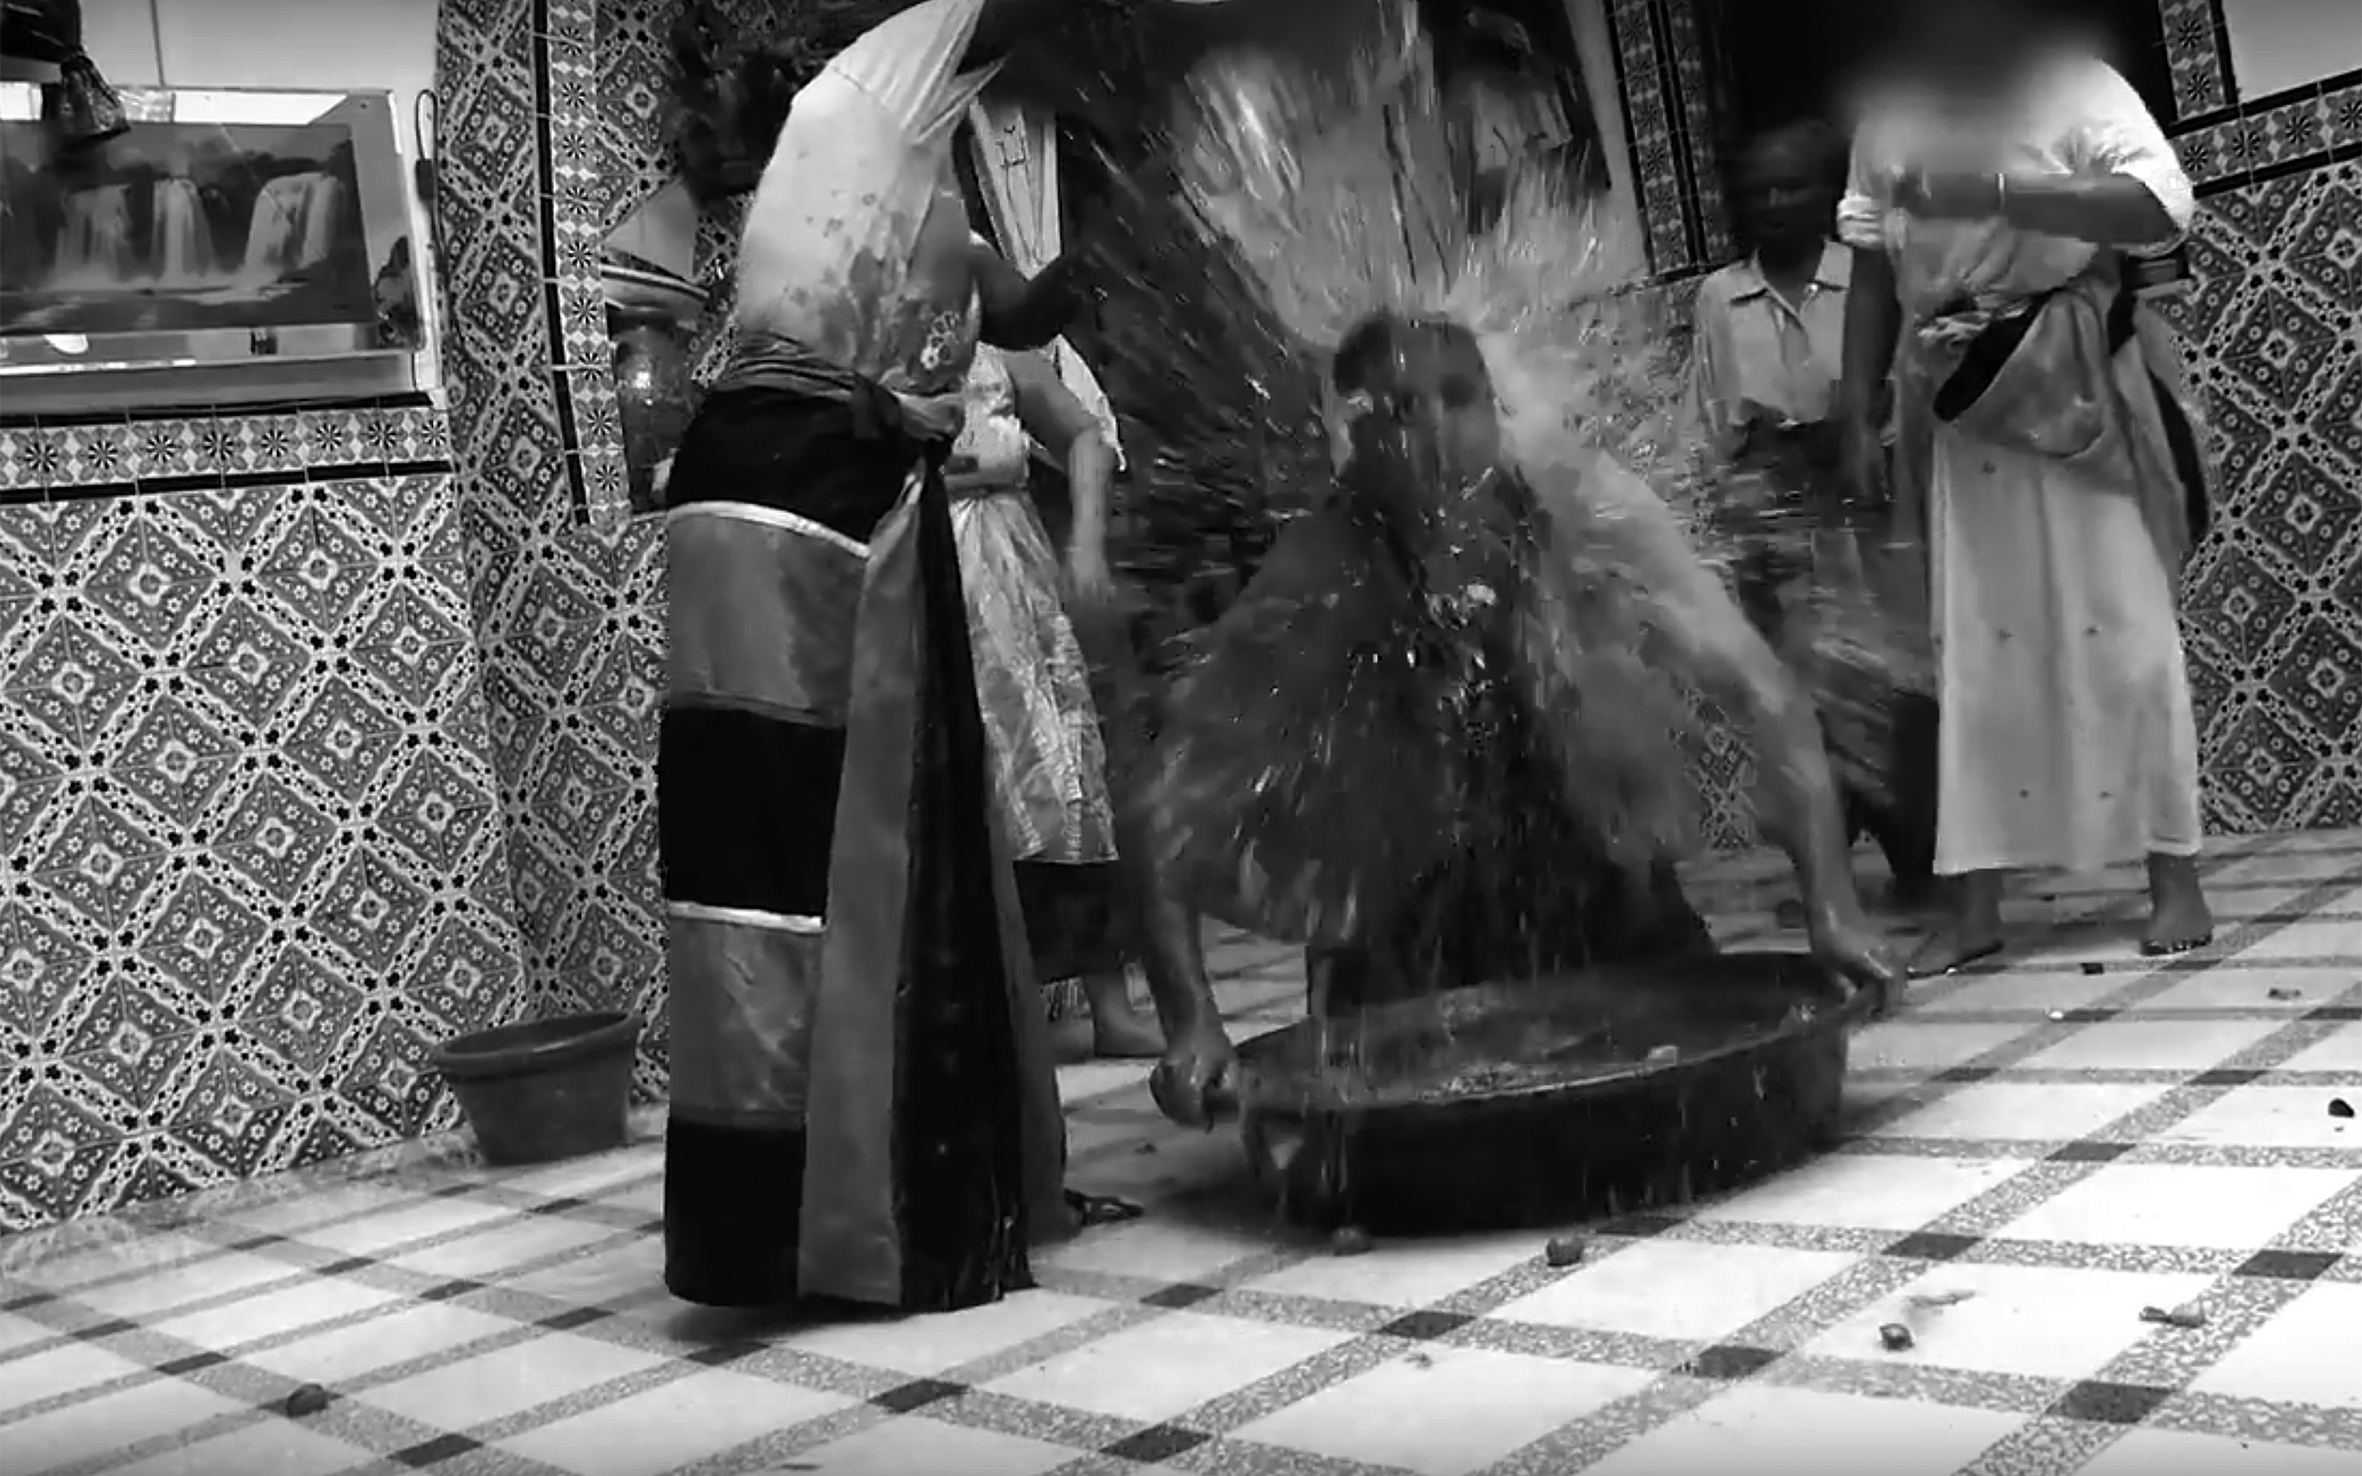 835. STAMBALI / Tunisia - STAMBALI is a traditional religious trance ceremony coming from Tunisia, as well as healing and demon exorcism ritual. It is a ritual music and a cult of possession that draw origins of the African presence slaves and descendants of black slaves which mingled local beliefs related to the cults of the saints in popular Islam (wali).